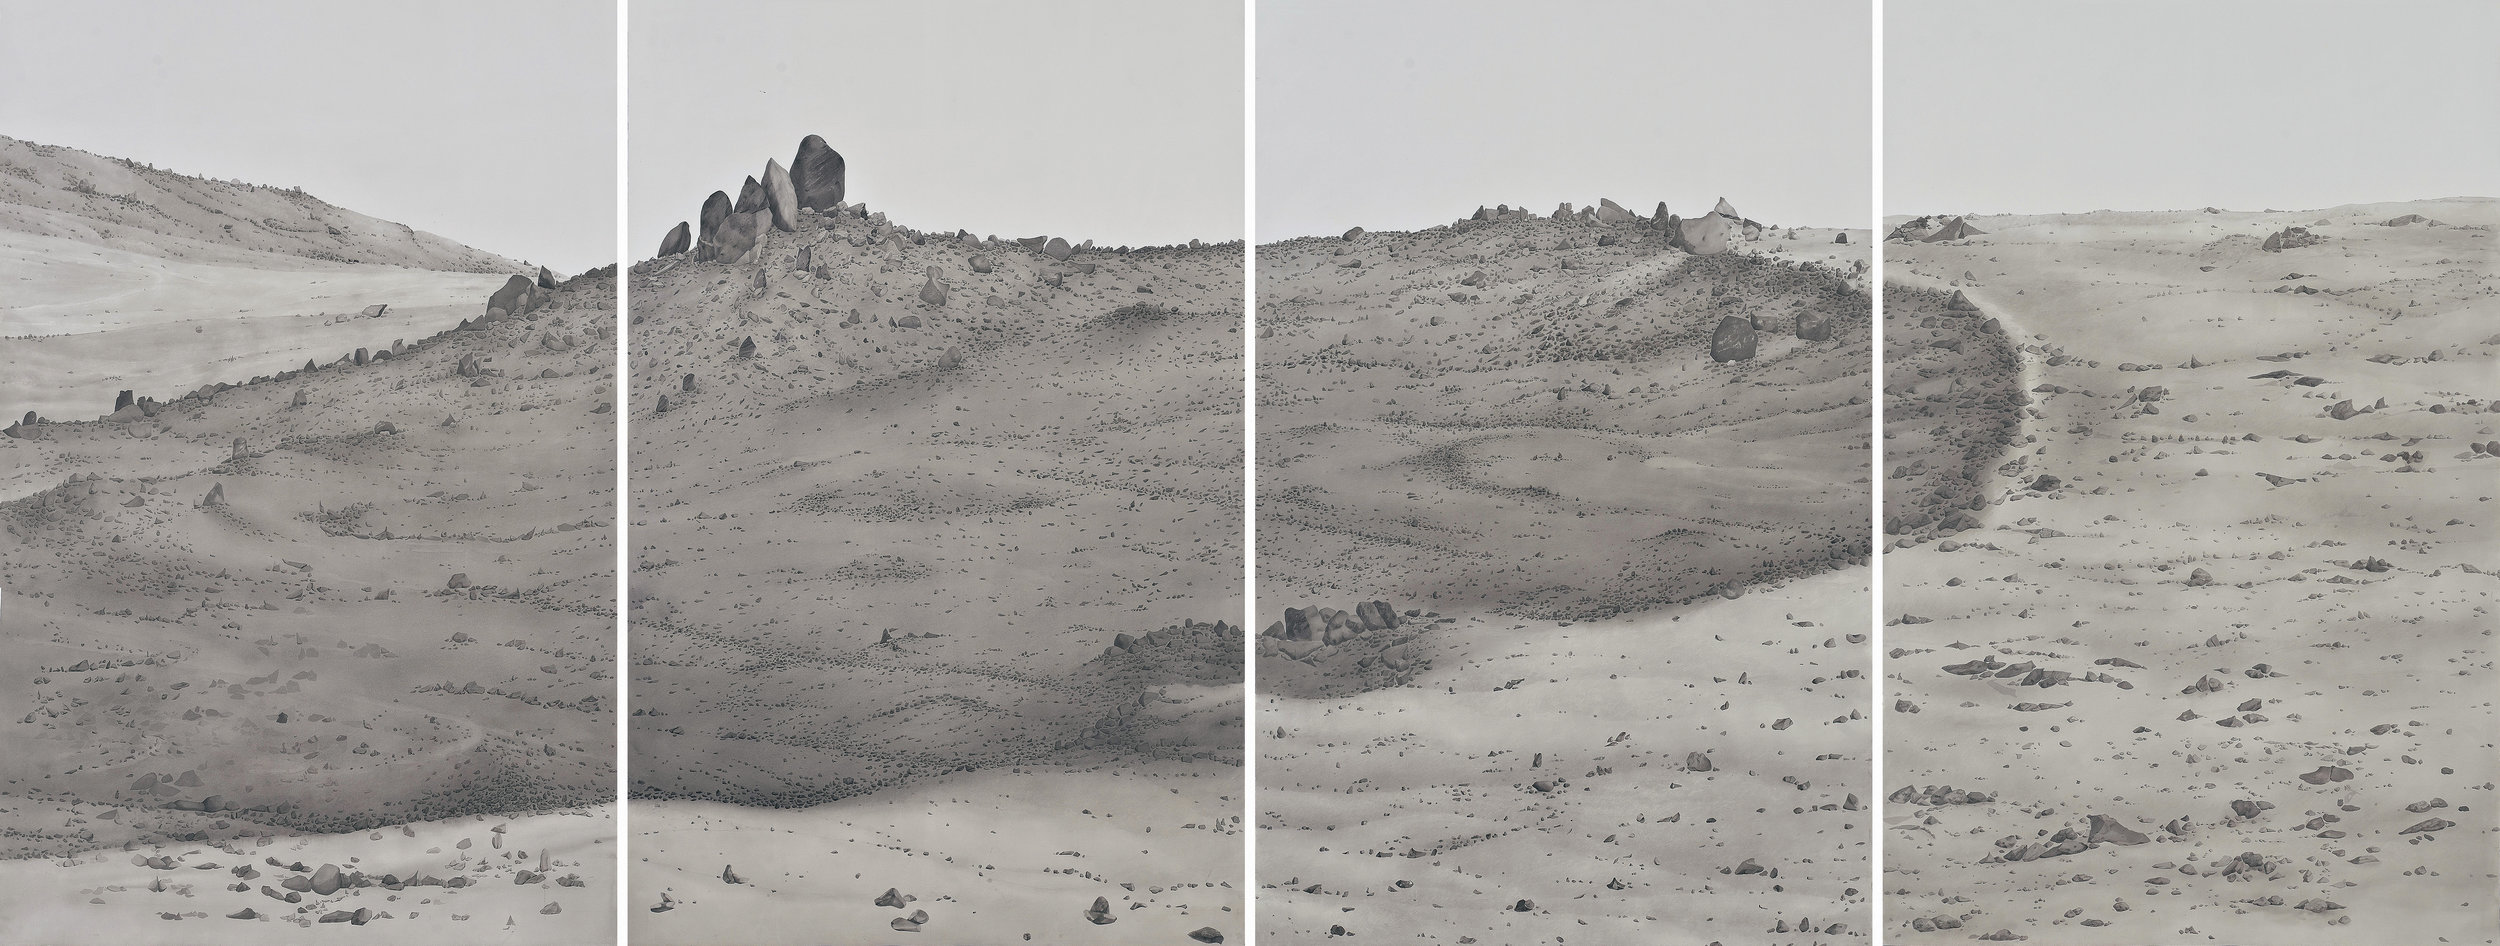 Ali Kazim,  Untitled  (Ruins Series), 2014-15. Watercolour pigment on paper. Courtesy of the APT9. Collection of the Kiran Nadar Museum of Art.